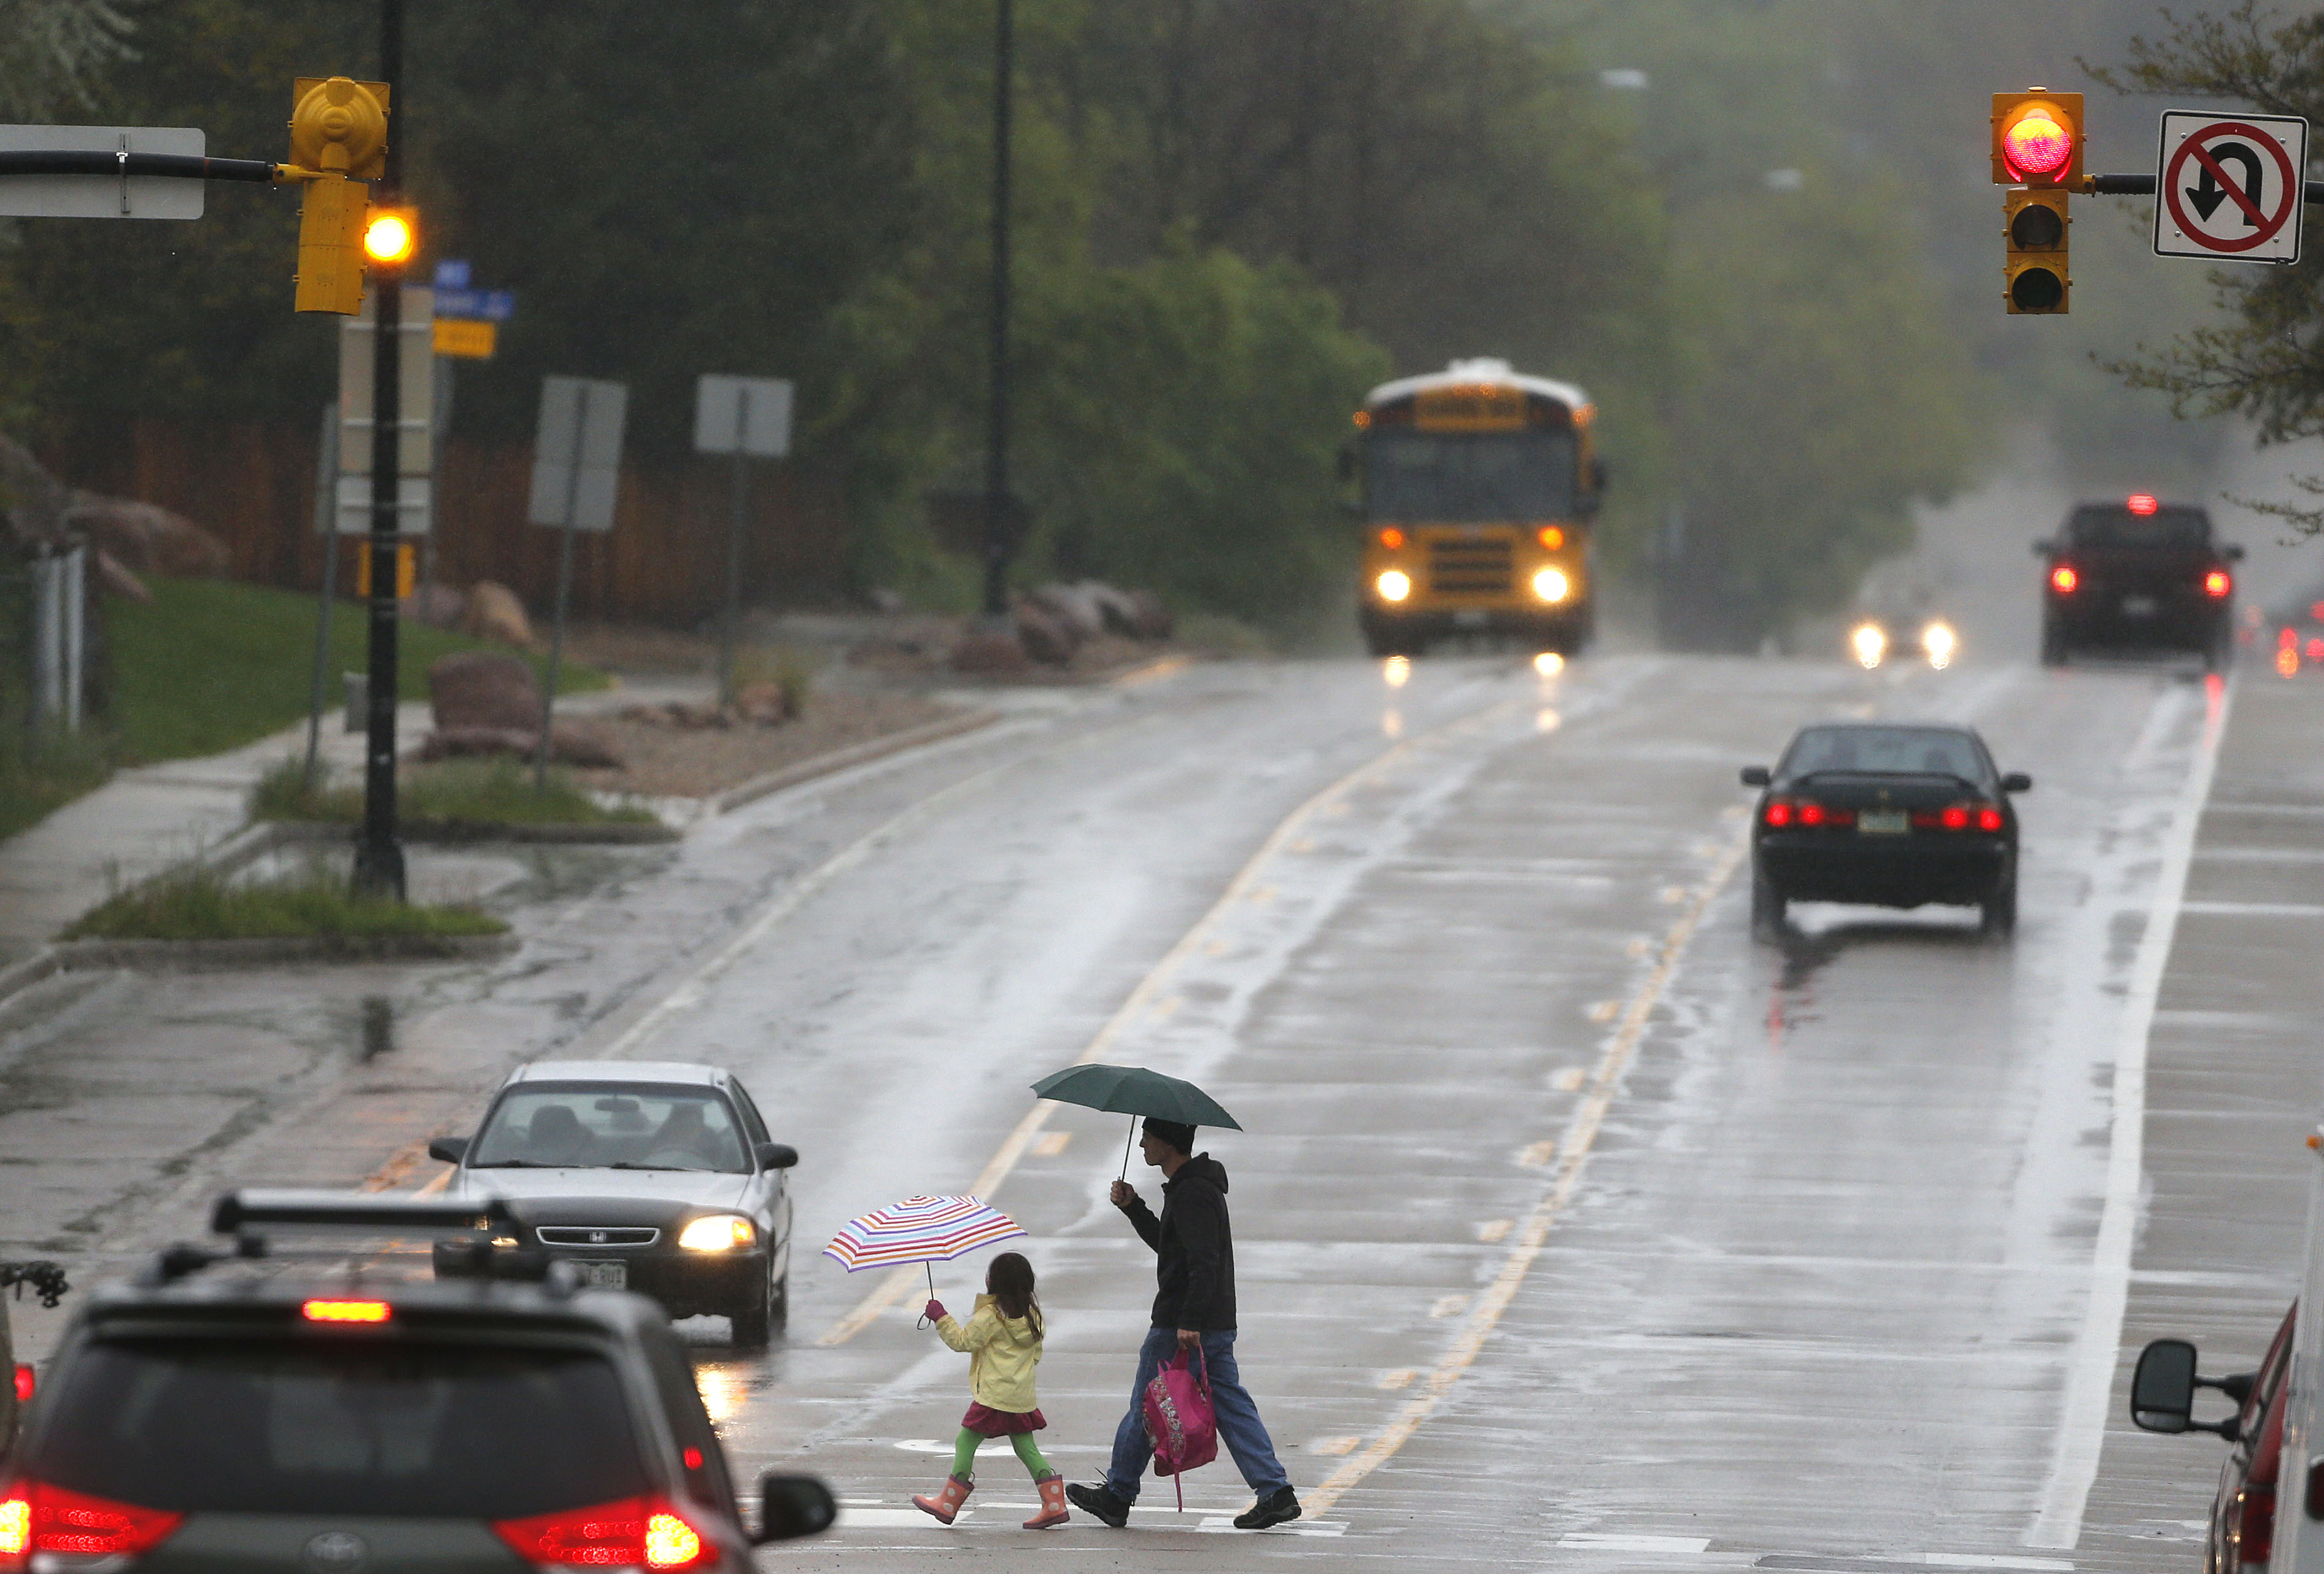 <p>A man walks a student to school in the rain, in Boulder, Colo., Tuesday, May 19, 2015. Colorado braced for a spring storm with unseasonably heavy rains and several inches of snow expected in the high country.</p>